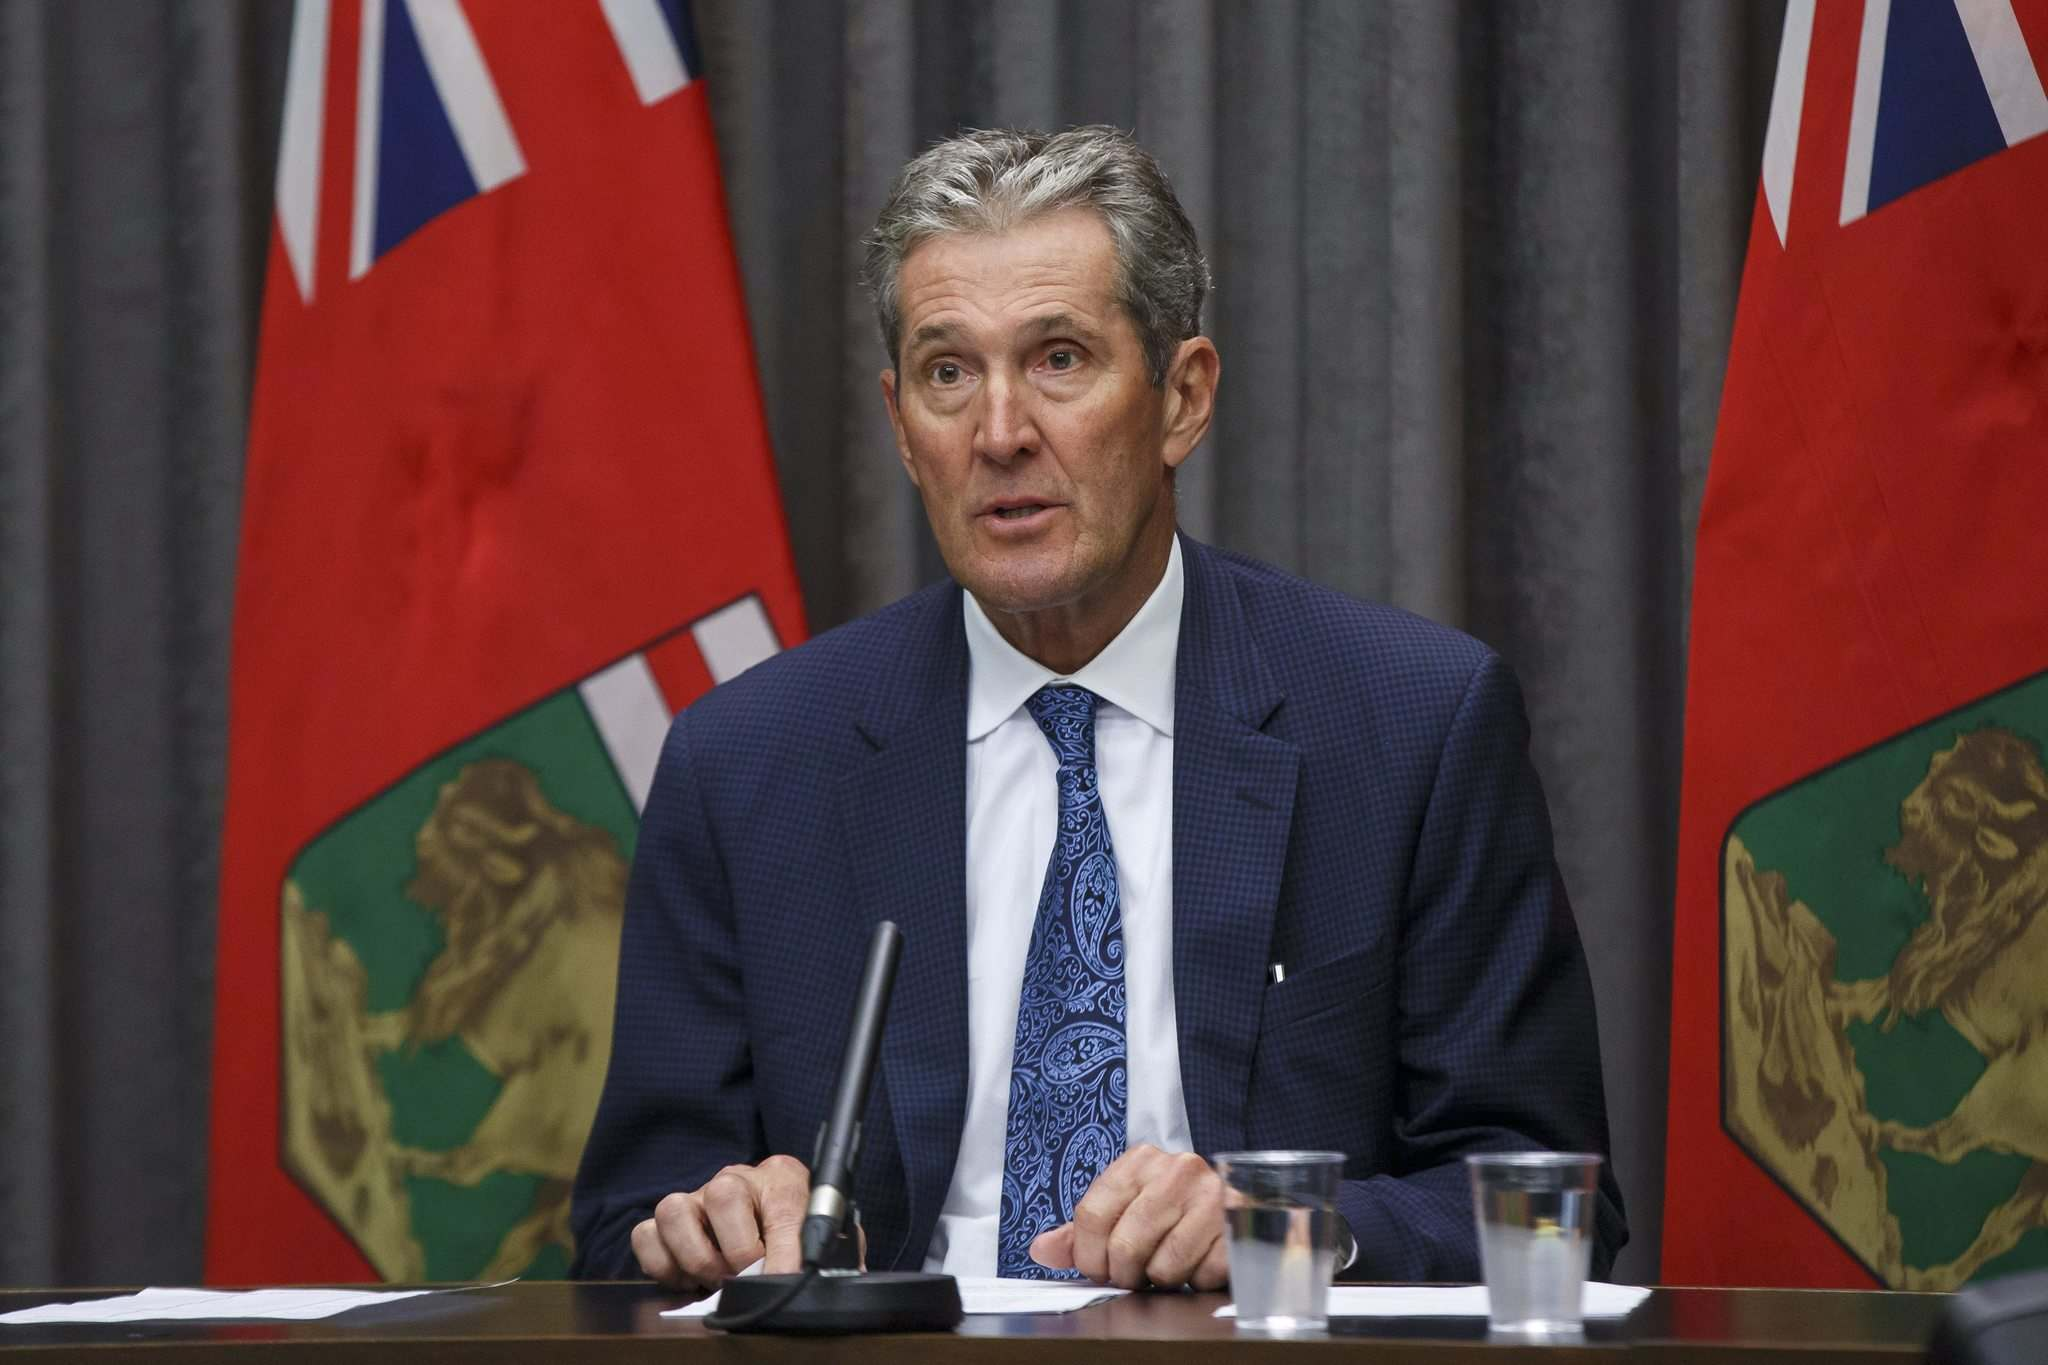 MIKE DEAL / FREE PRESS FILES</p><p>The government will be distributing $120 million to essential-service workers through the Manitoba Risk Recognition Program, Premier Brian Pallister announced today.</p></p>